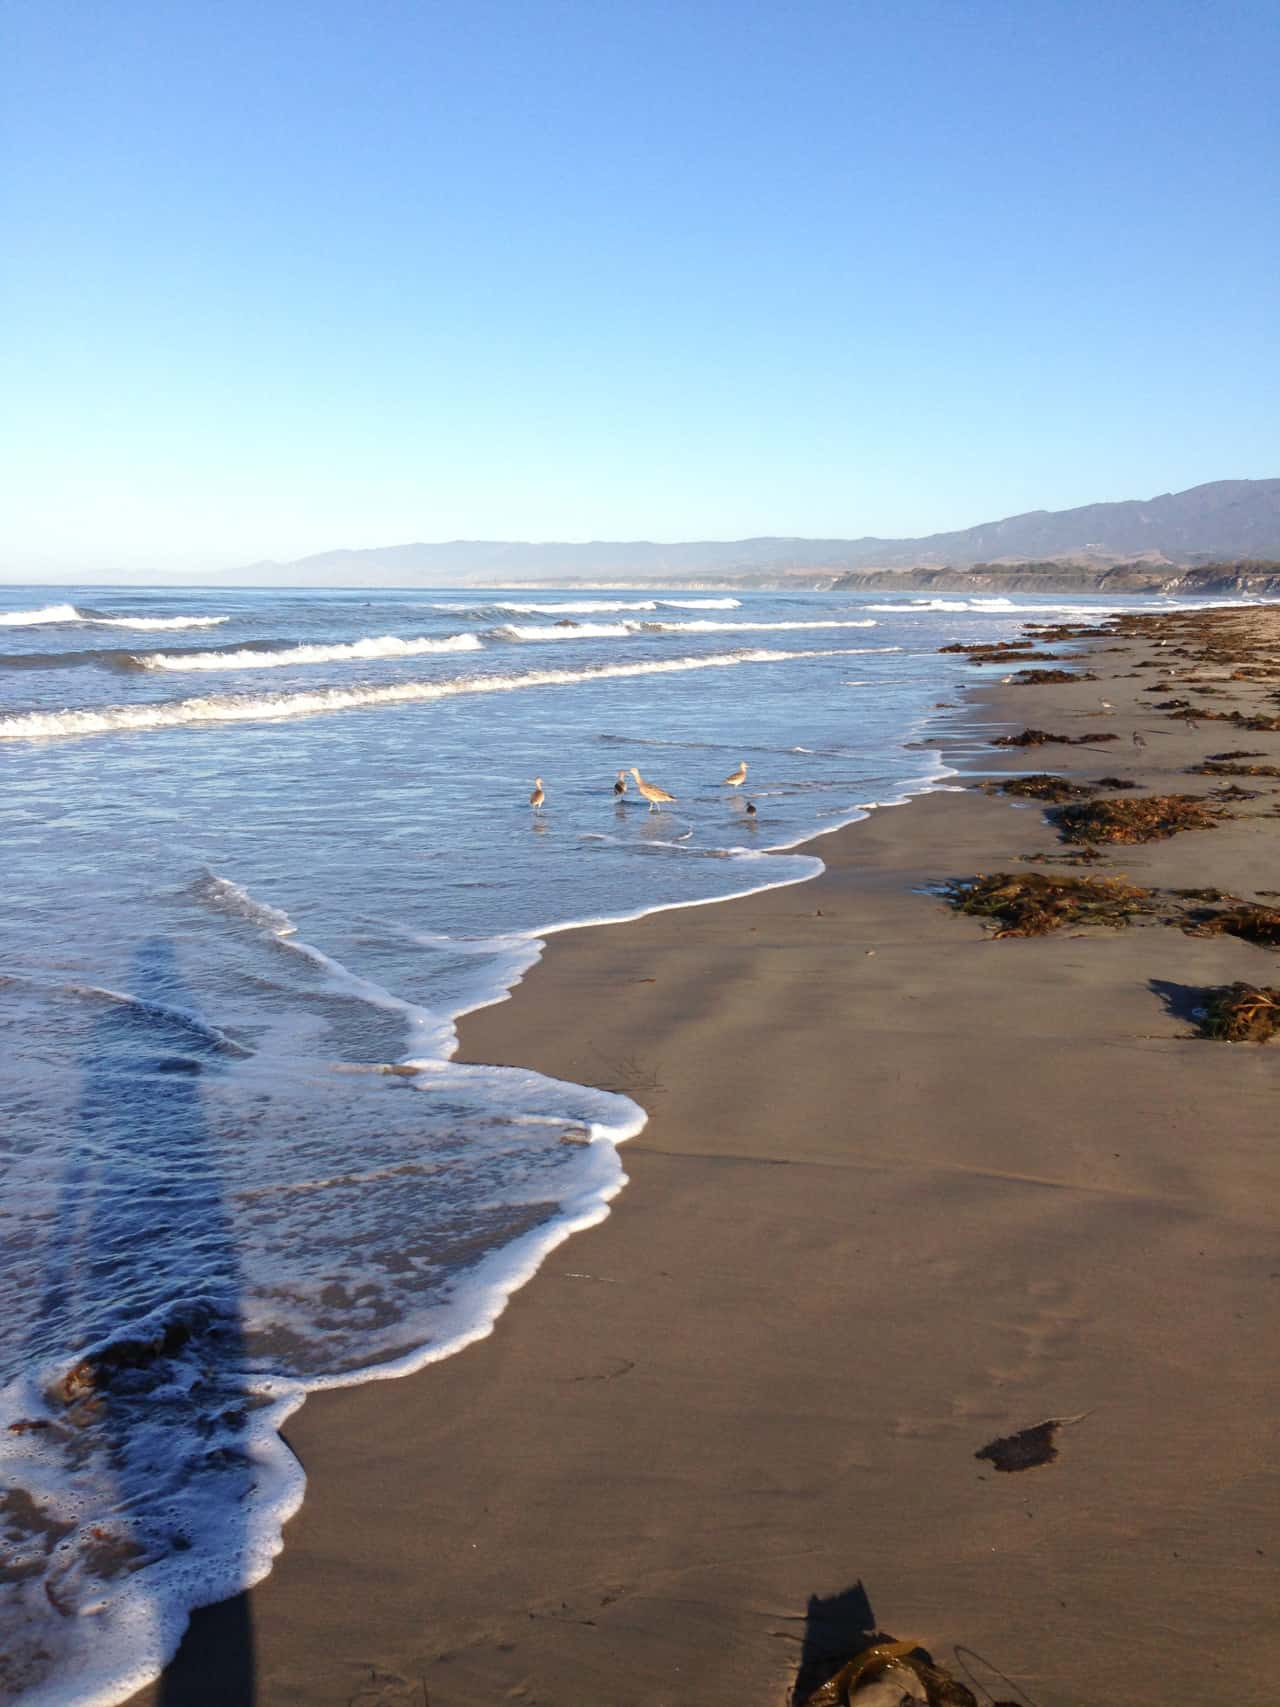 Sands Beach, Isla Vista, Best Central California beaches, Santa Barbara County beaches